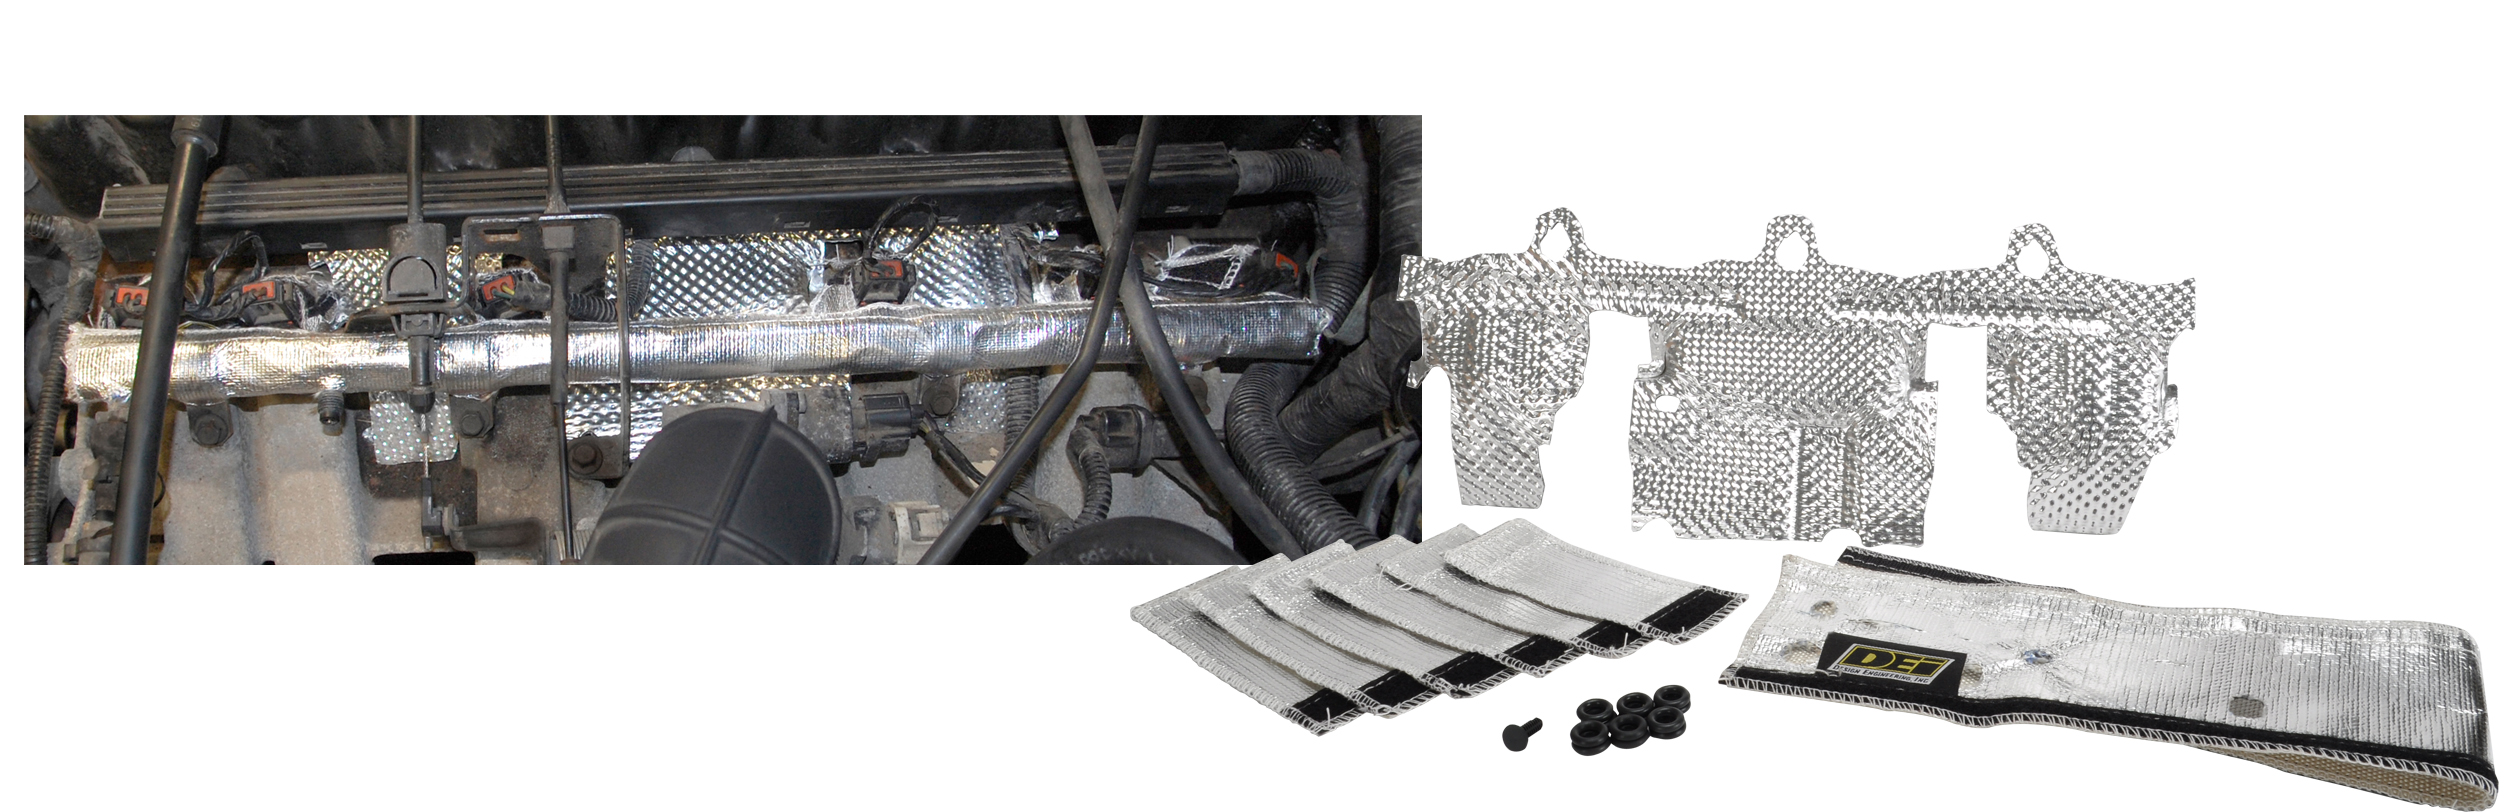 Dei 4 0l Fuel Rail Injector Cover Kit Jpfreek Make Your Own Beautiful  HD Wallpapers, Images Over 1000+ [ralydesign.ml]